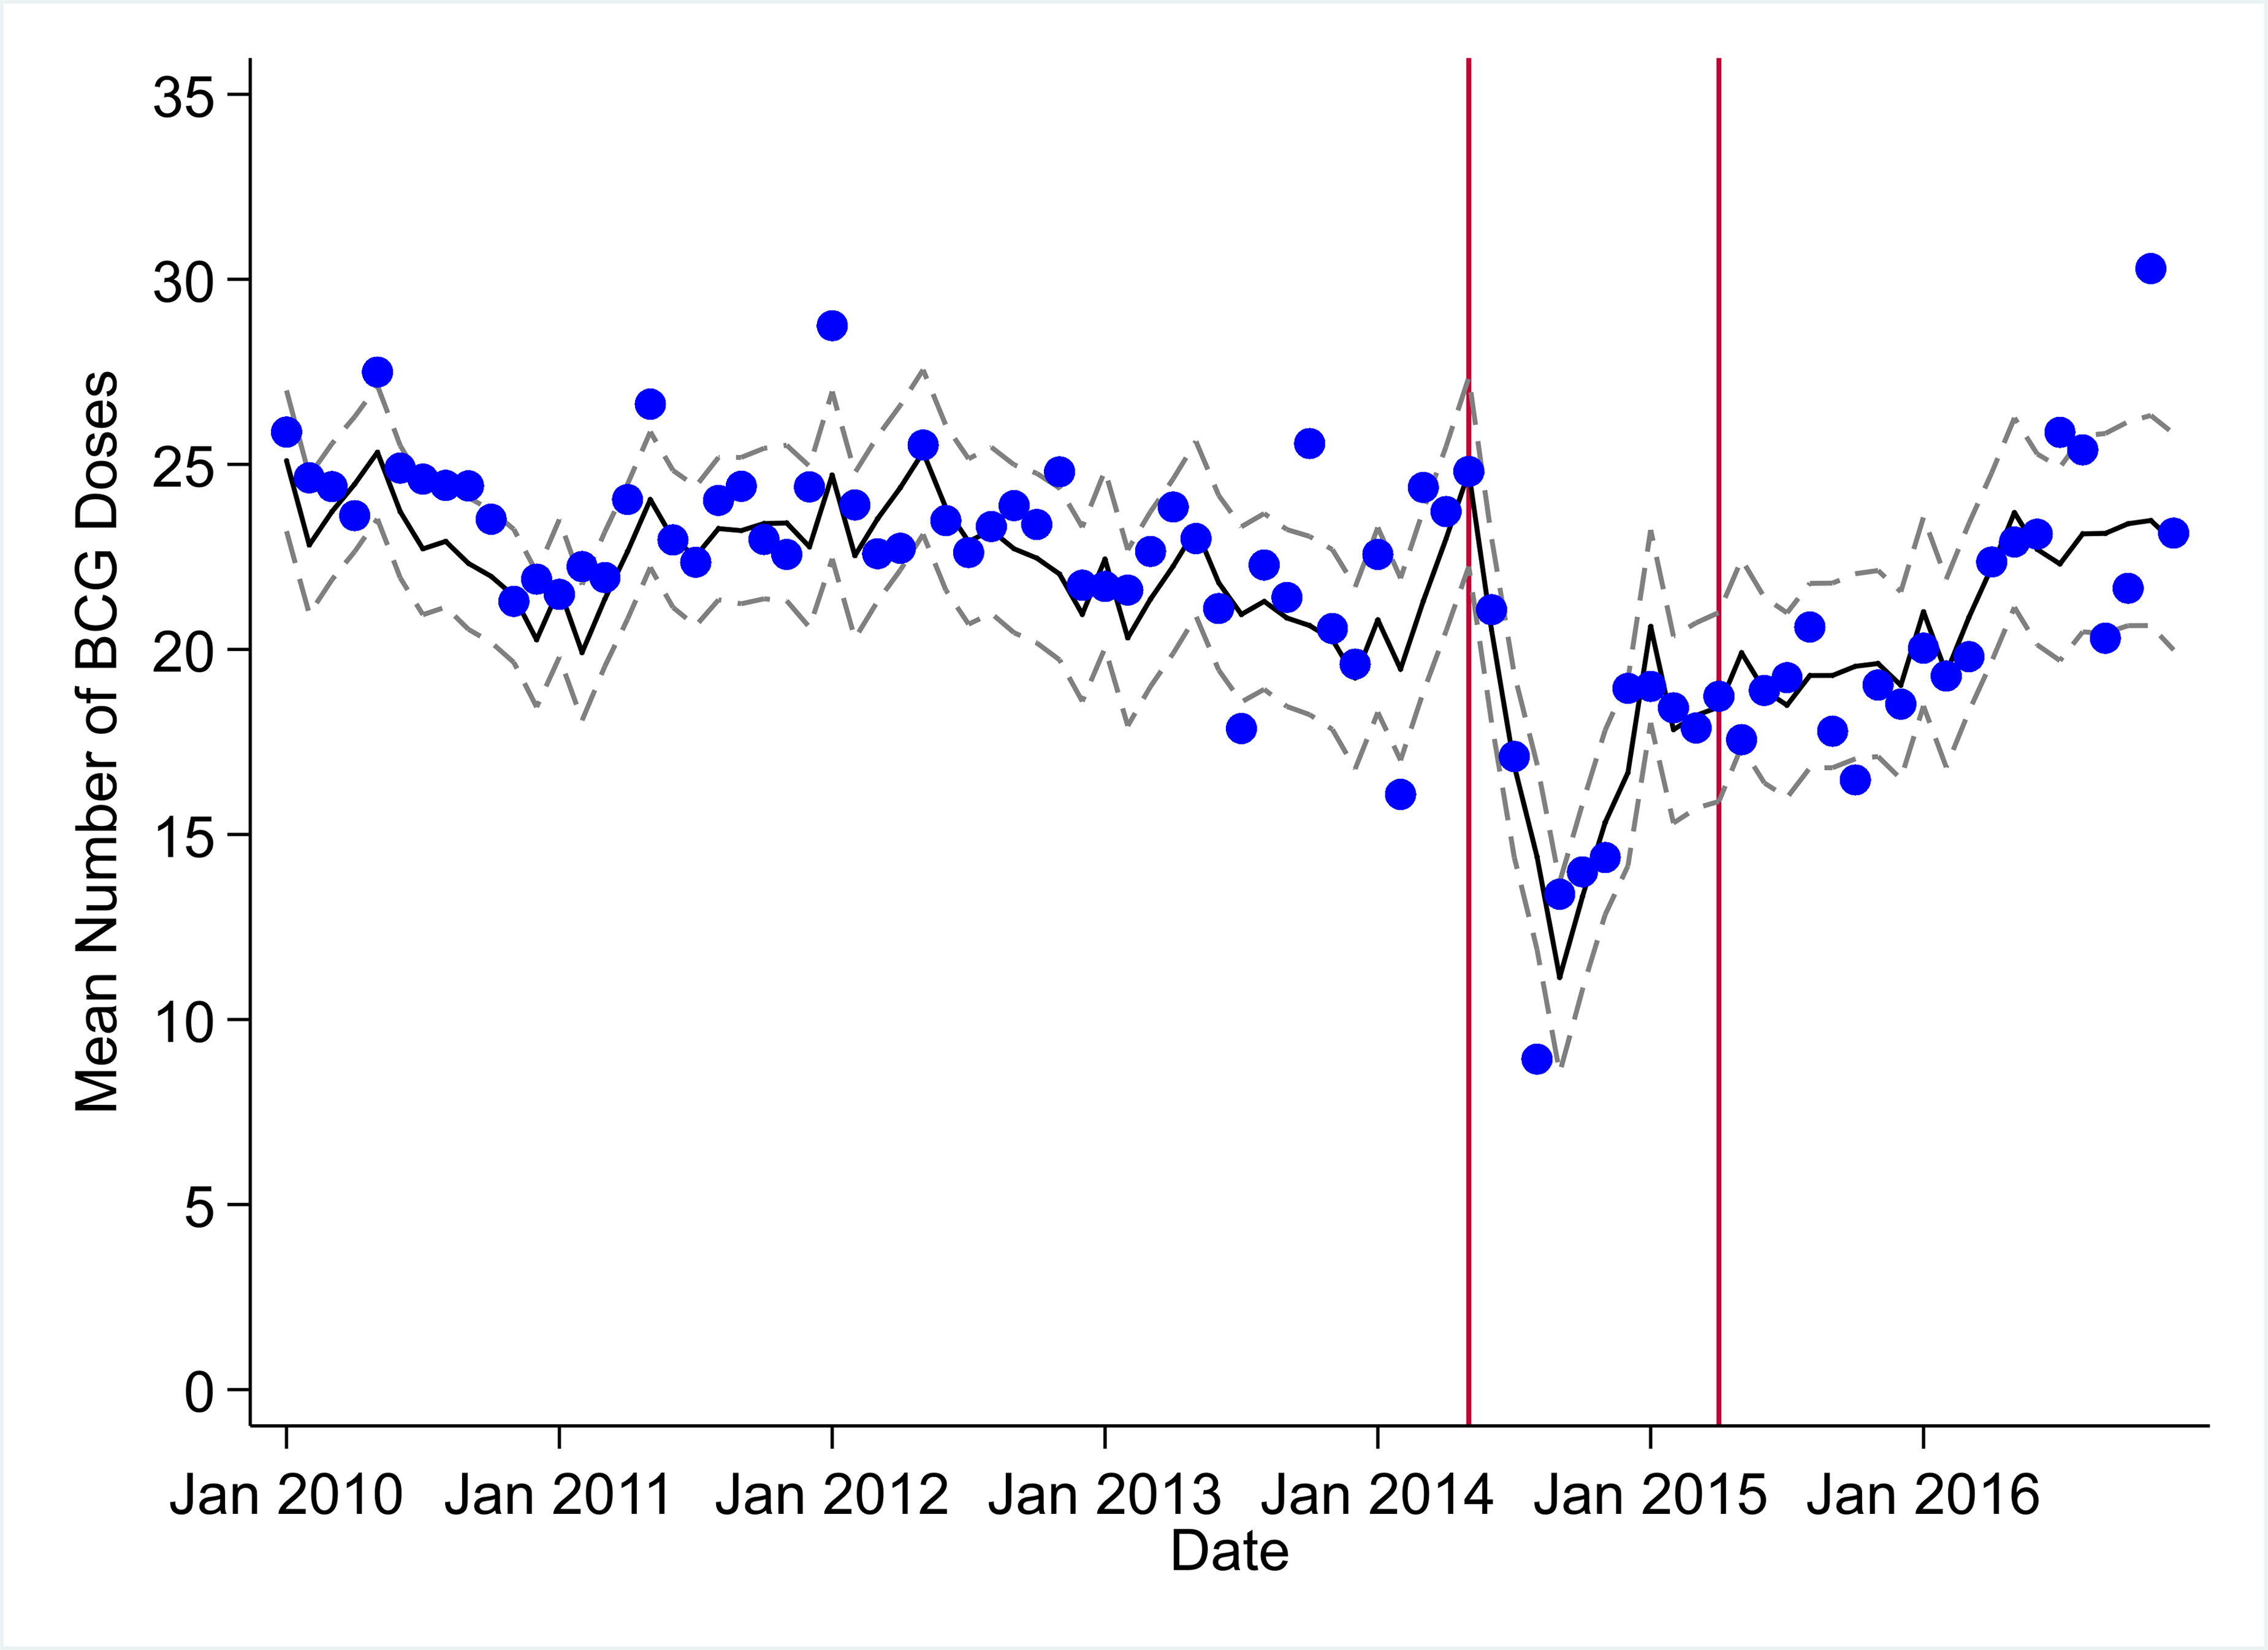 Mean trends and system losses due to Ebola virus disease (EVD) outbreak (June 2014–April 2015) for bacille Calmette–Guérin (BCG) vaccinations in a census of 379 clinics providing services in Liberia from 2010–2016, excluding Montserrado County.